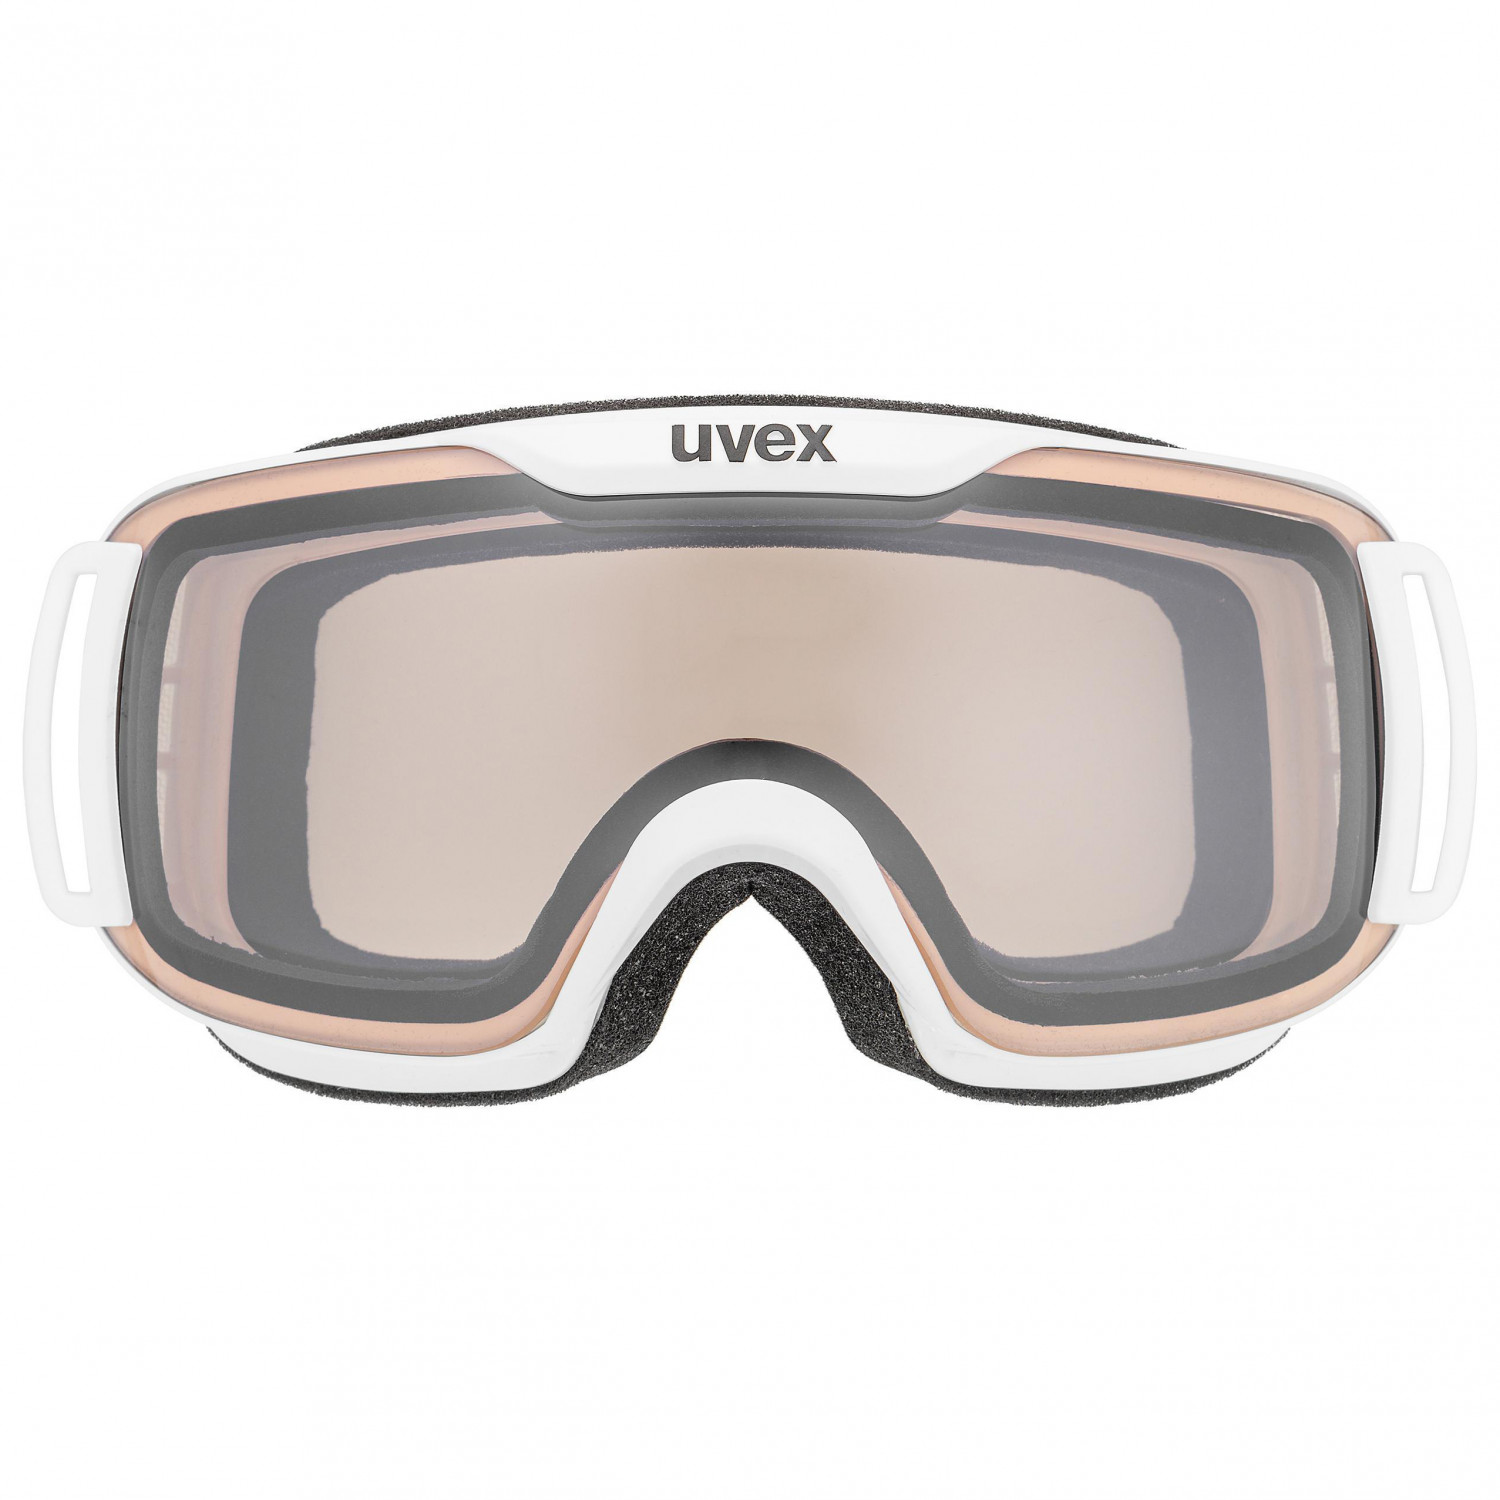 Uvex Goggles Accessories Included Microfiber Bag!